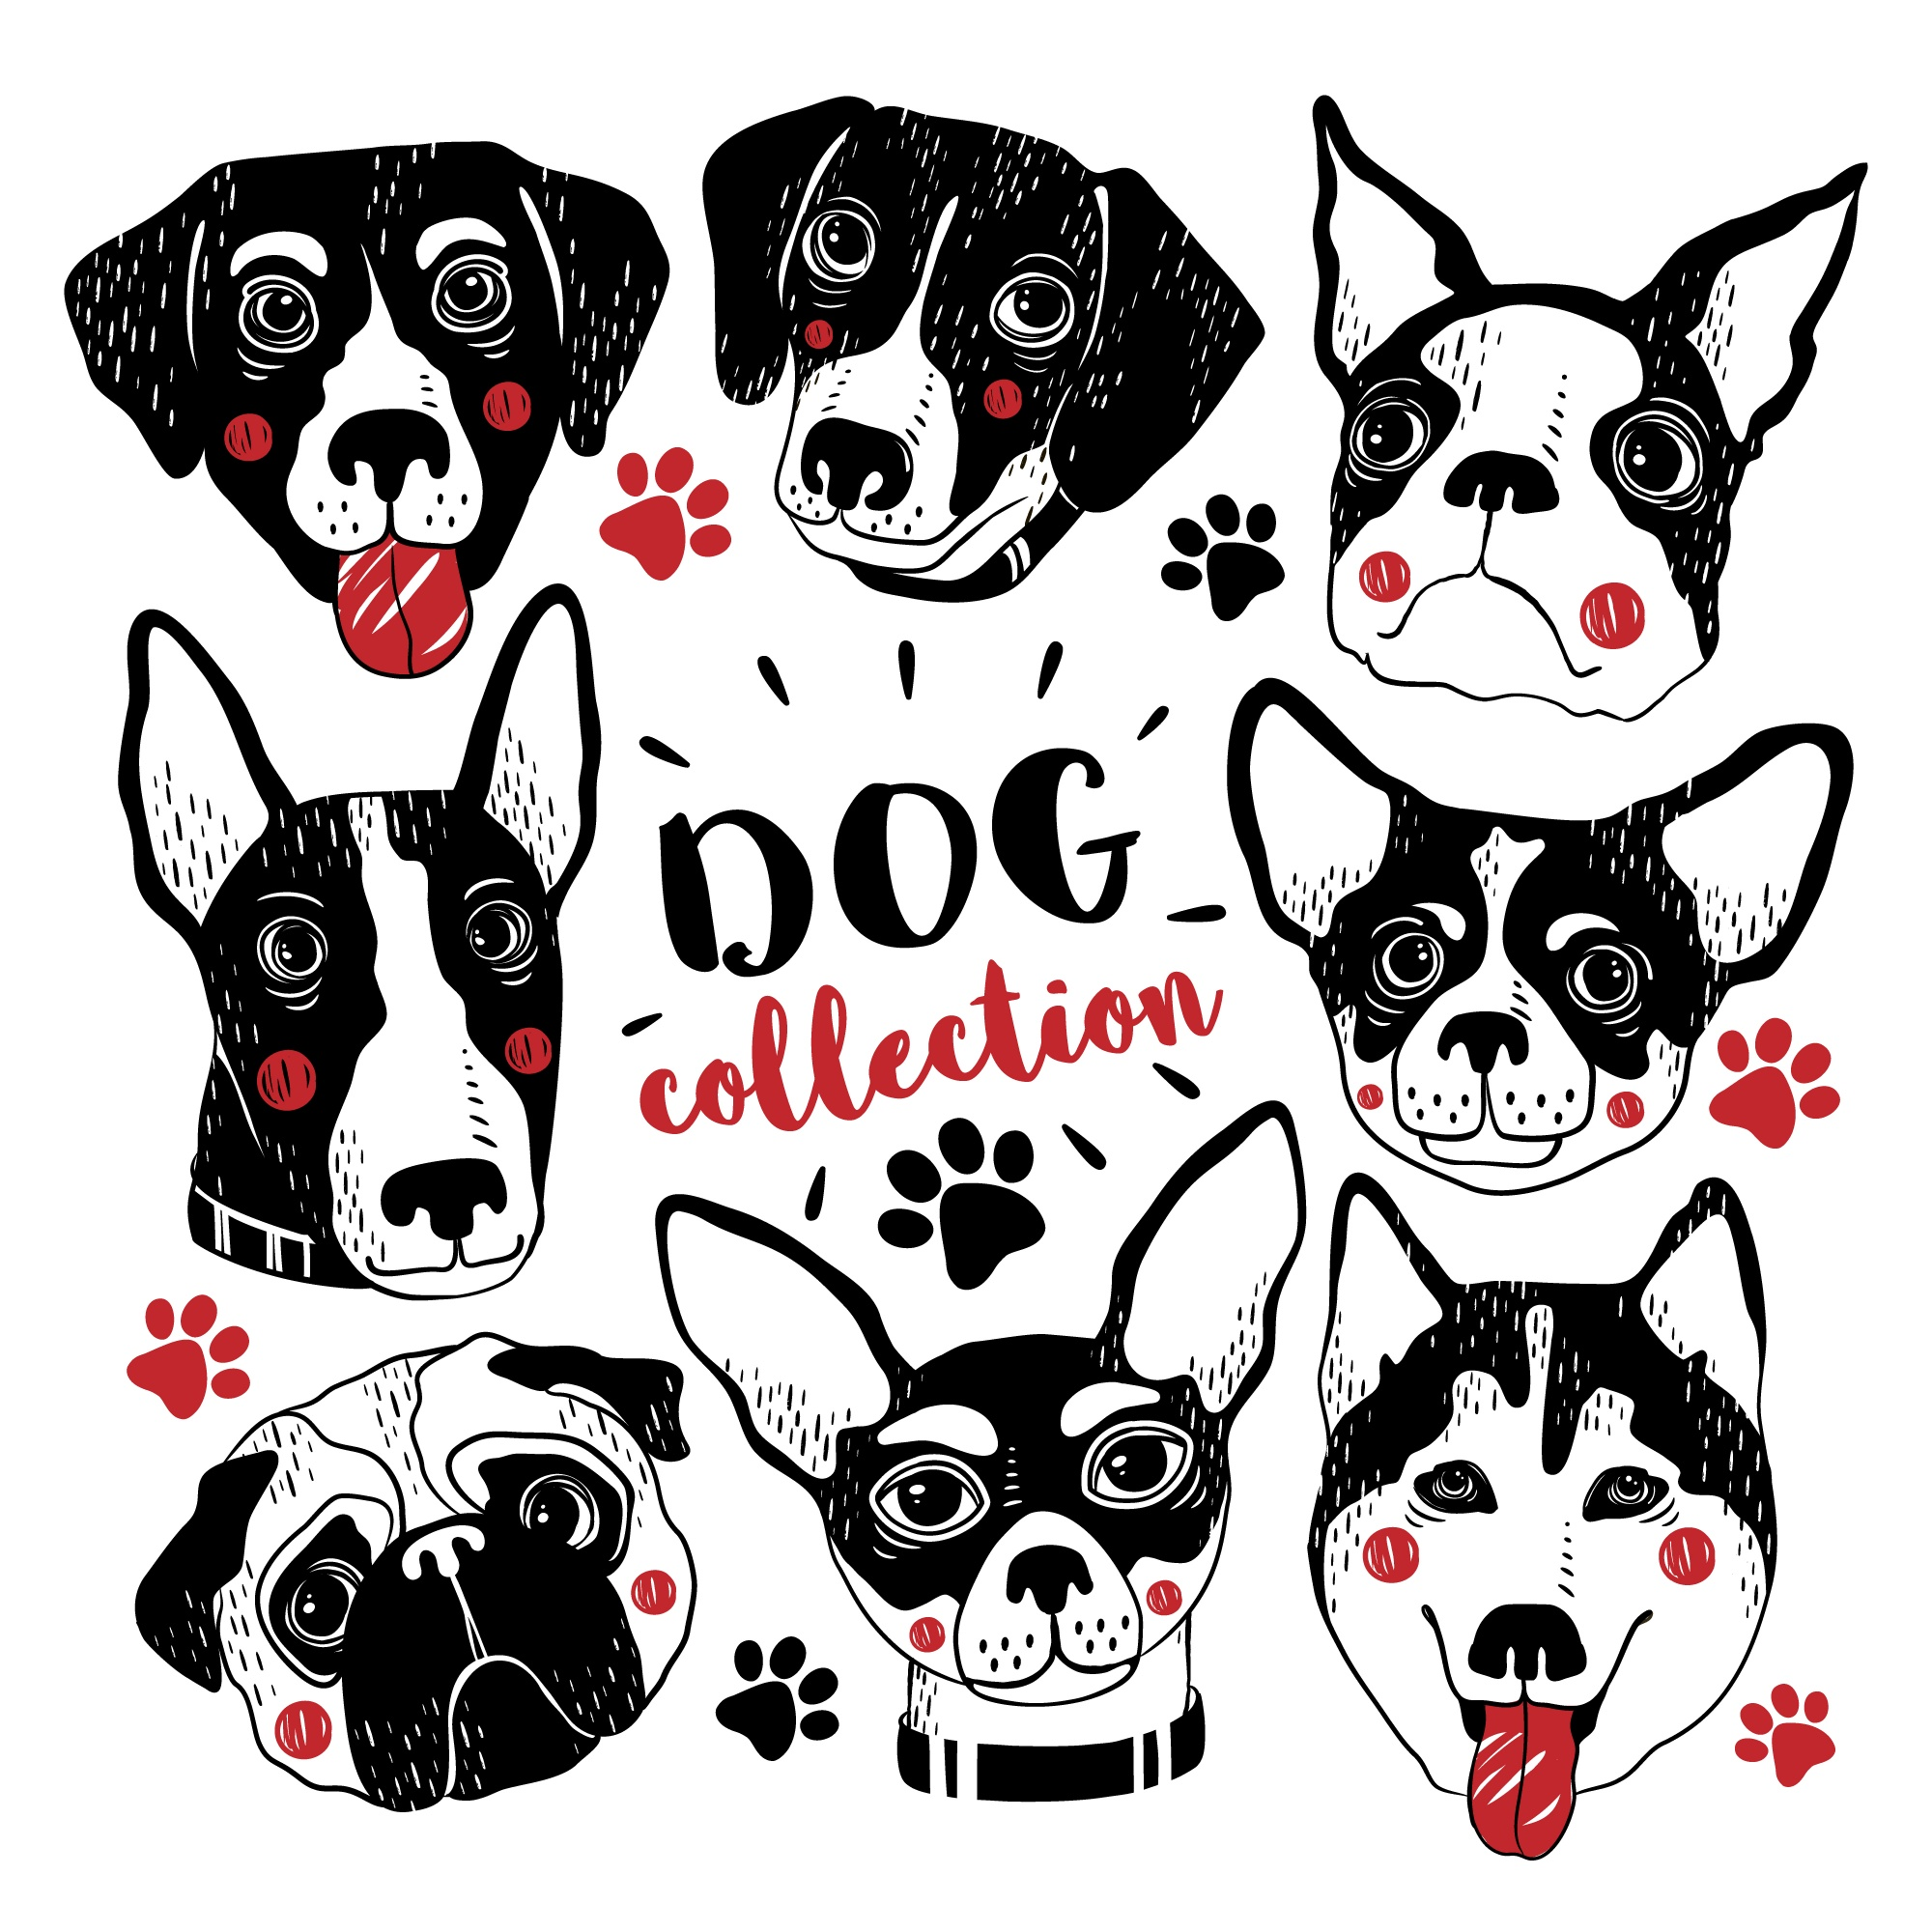 Cute hand drawn dogs collection